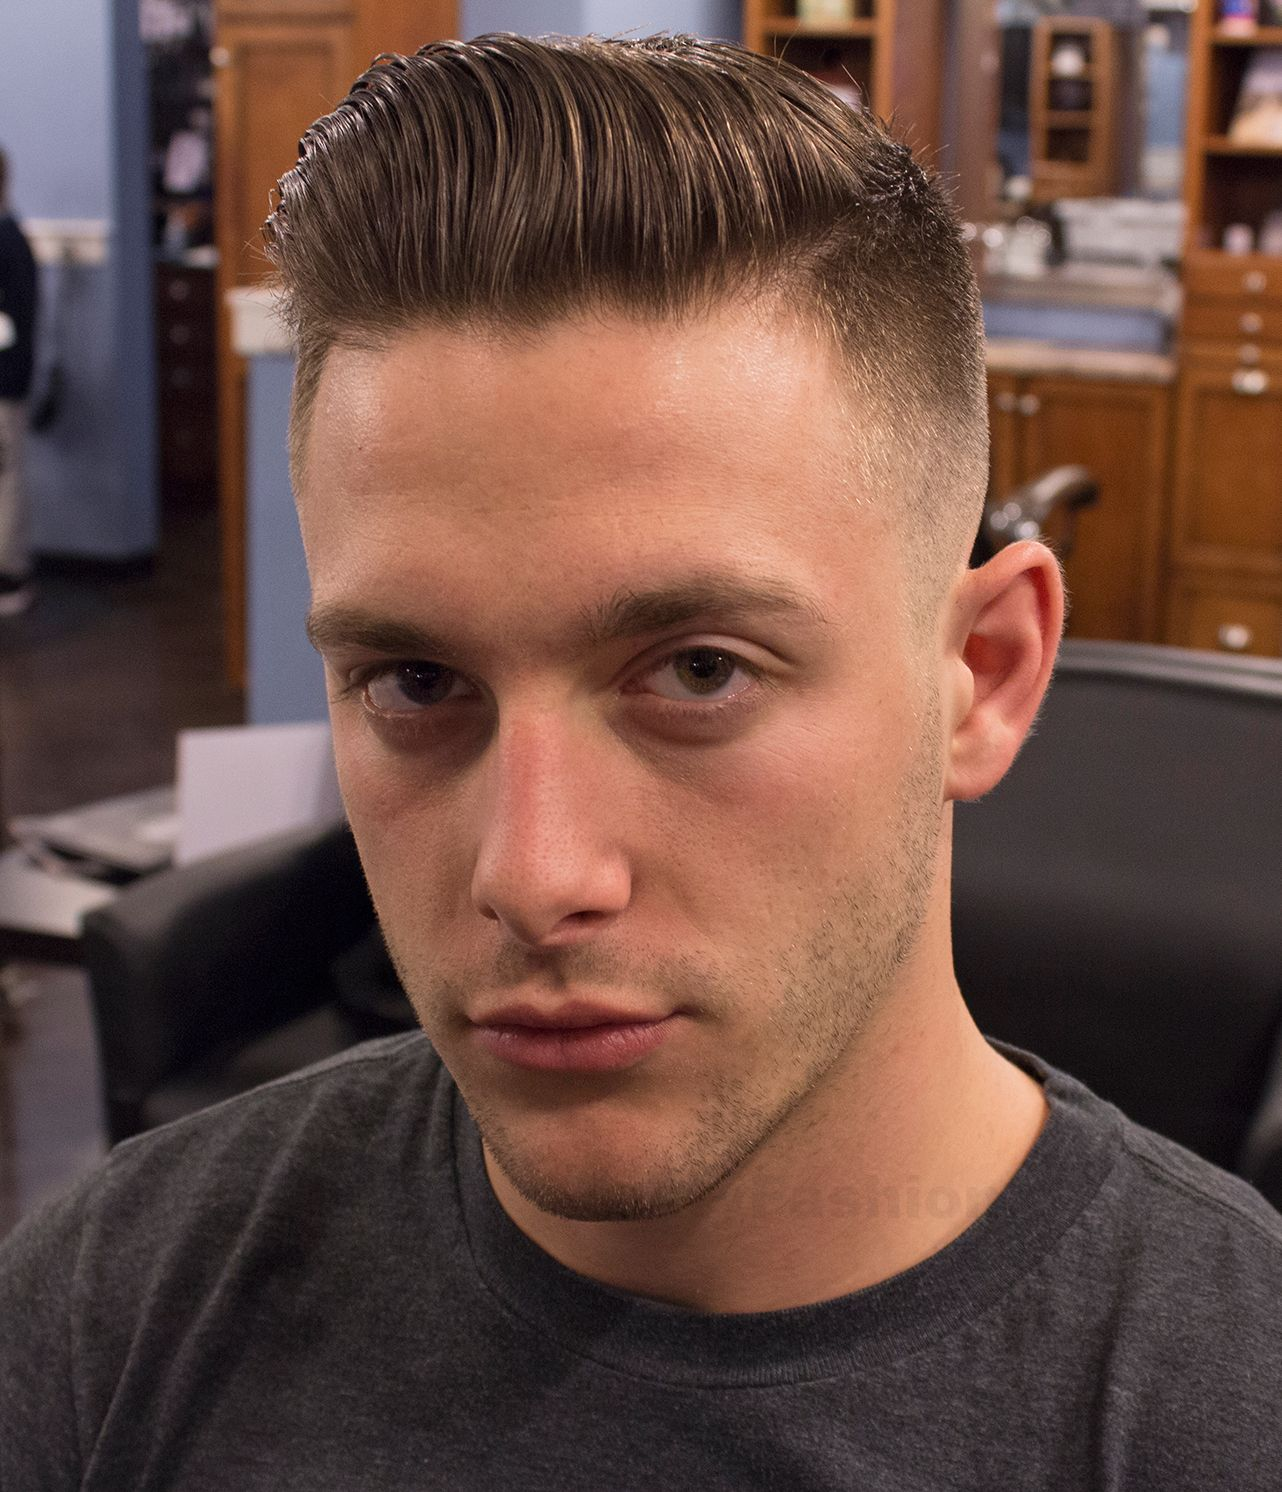 pompadour fade haircut style ���������� hair styles